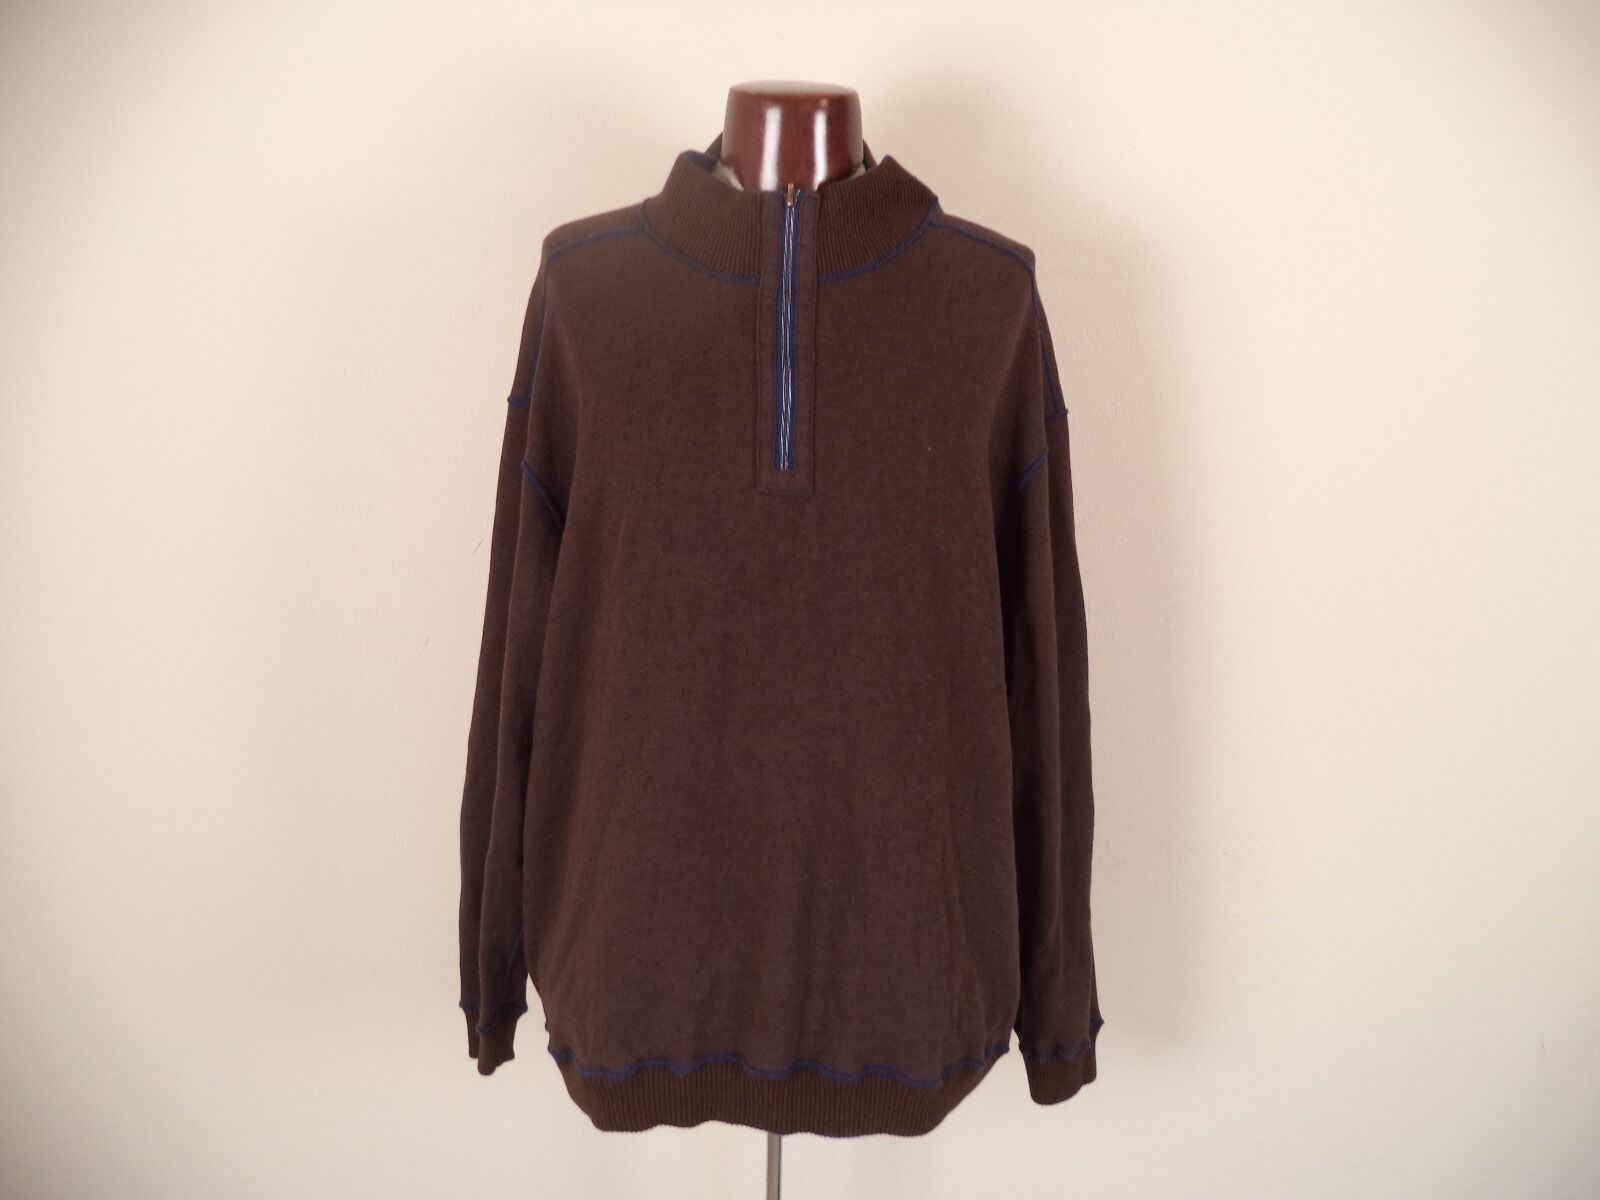 Men's Unbranded Reversible Sweater. Brown and bluee. Long Sleeve. Big & Tall.